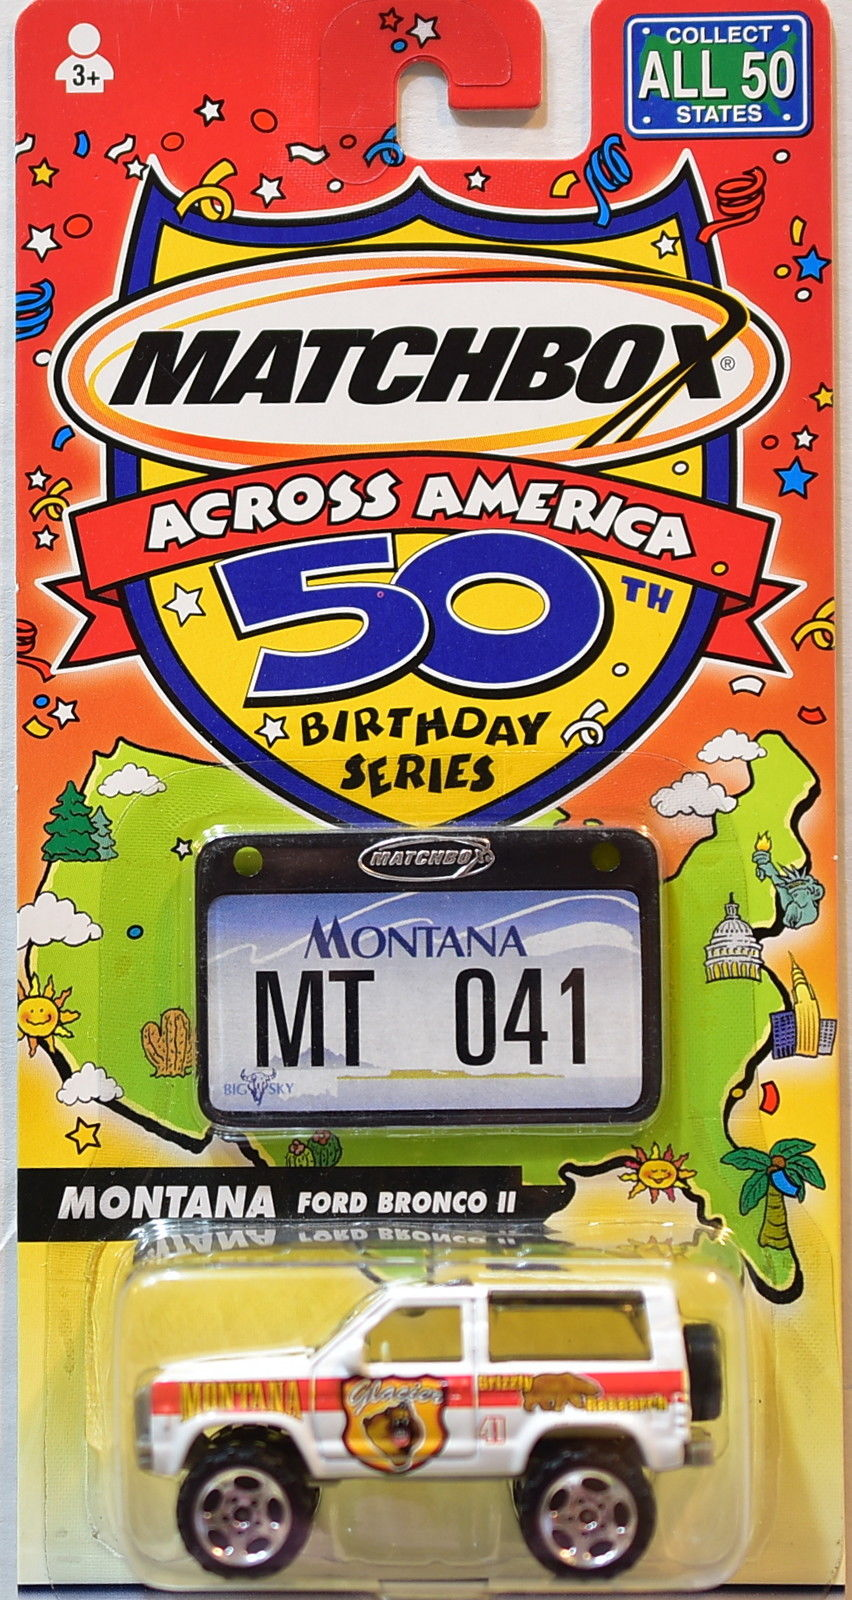 MATCHBOX ACROSS AMERICA 50TH BIRTHDAY SERIES MONTANA FORD BRONCO